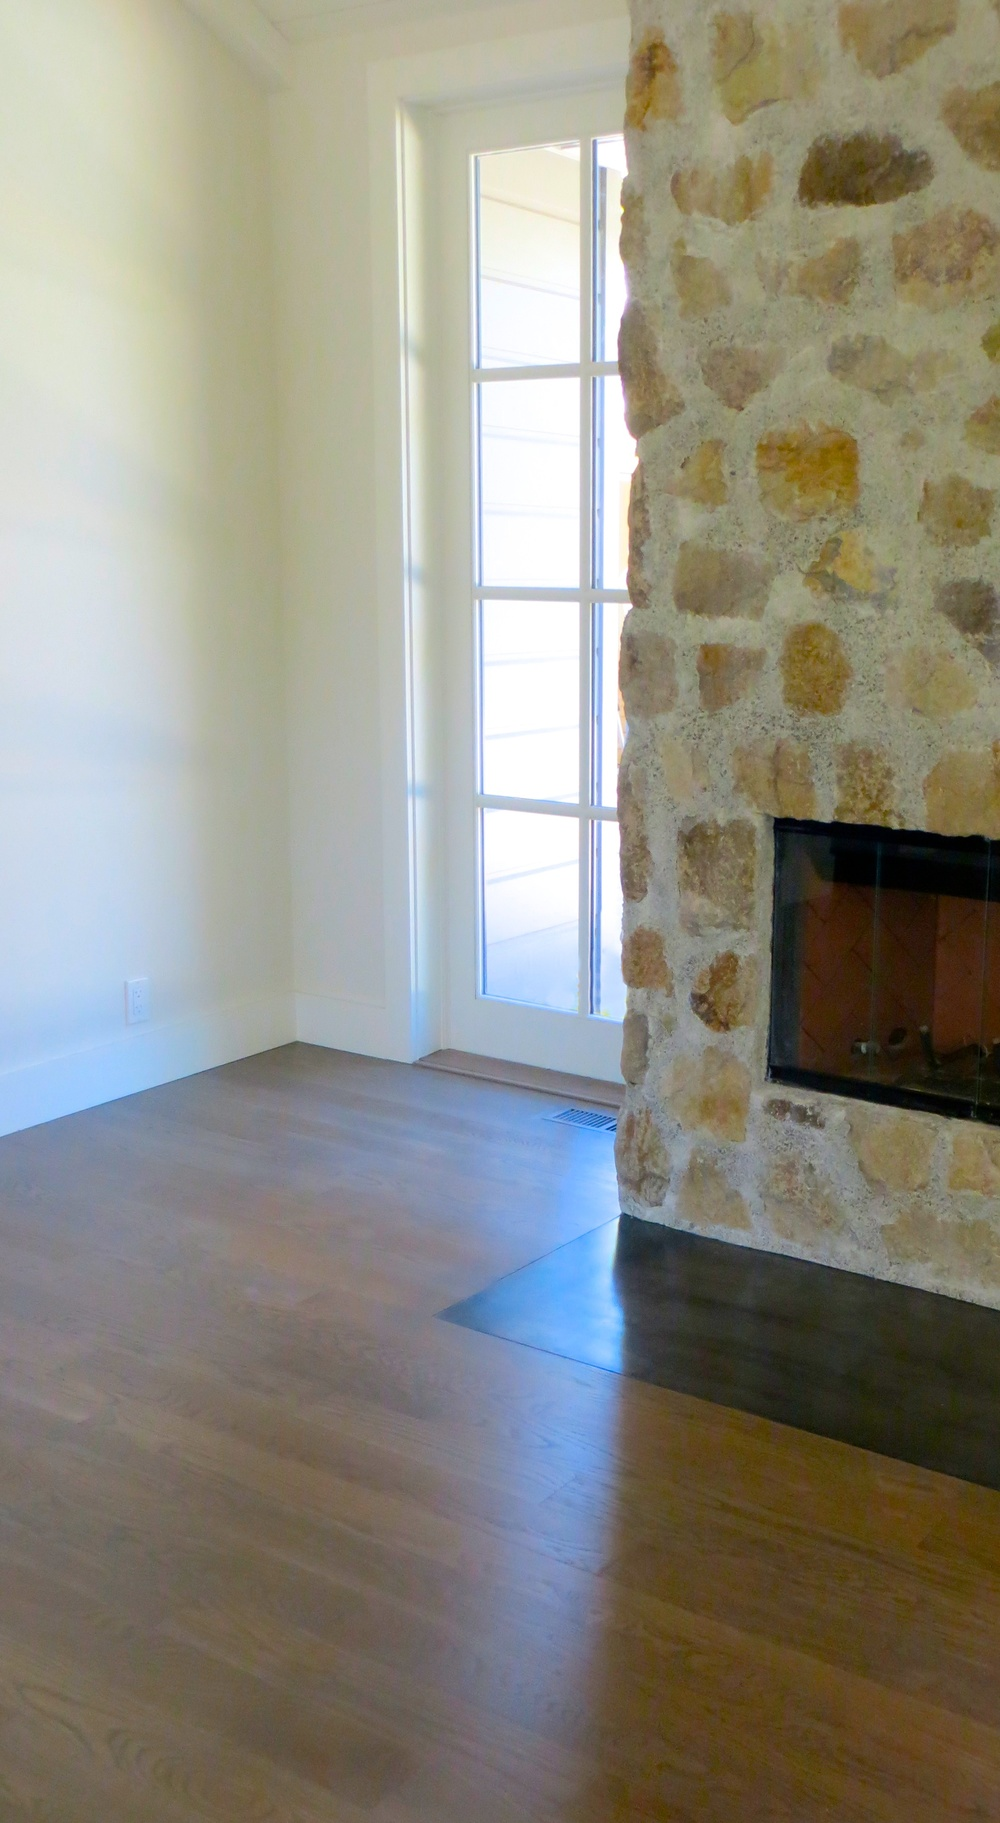 Madrona House Floor w fireplace - photoshop.jpg